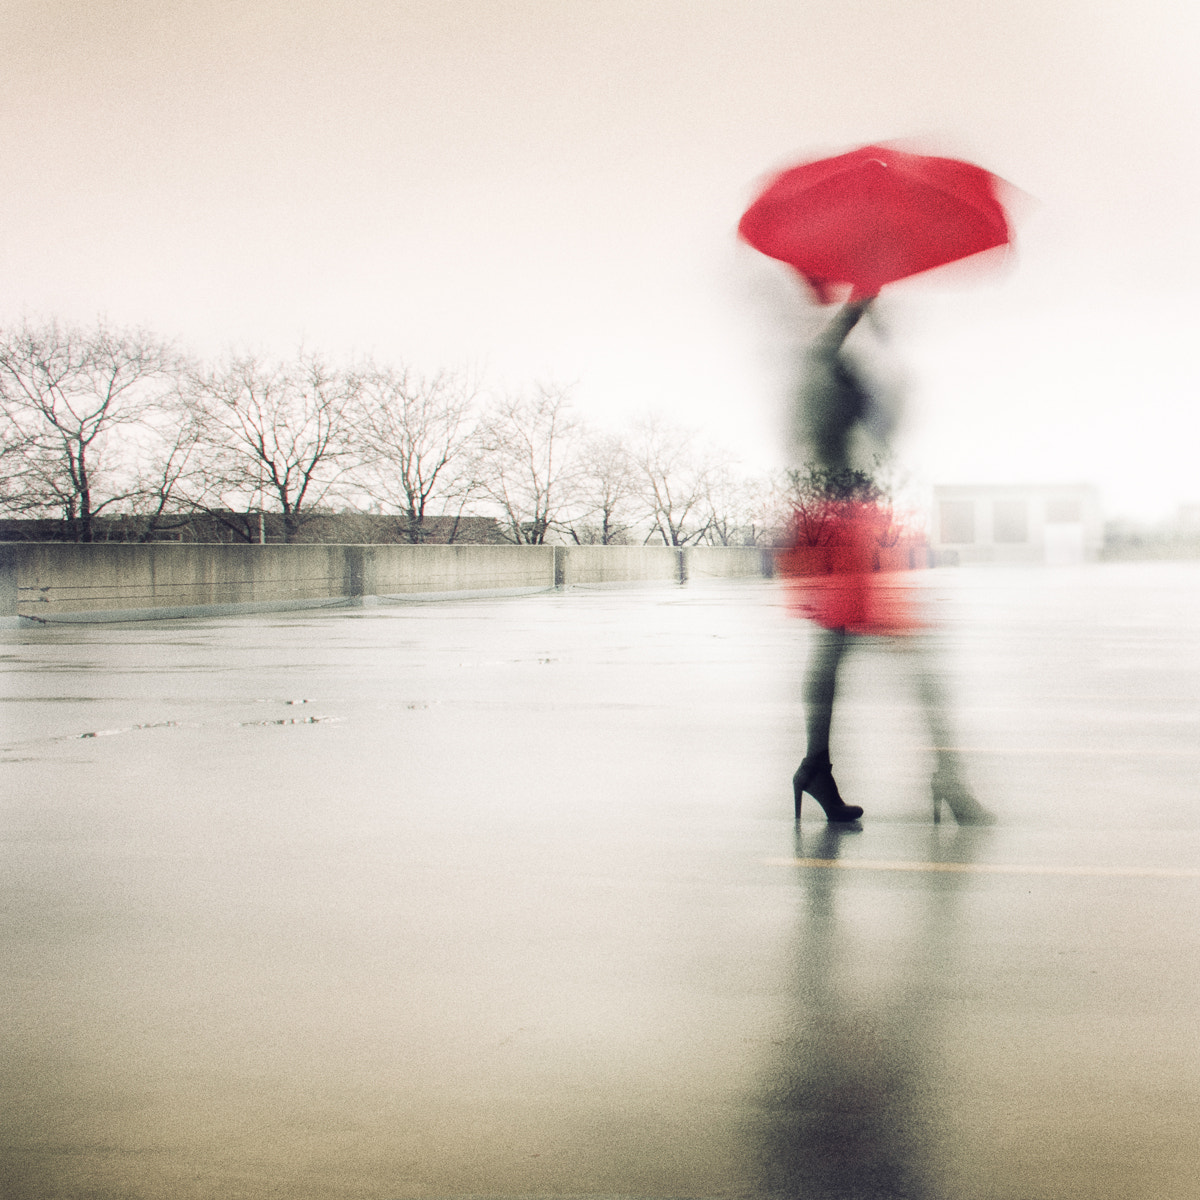 Photograph Whenever it rains by Tatiana Avdjiev on 500px